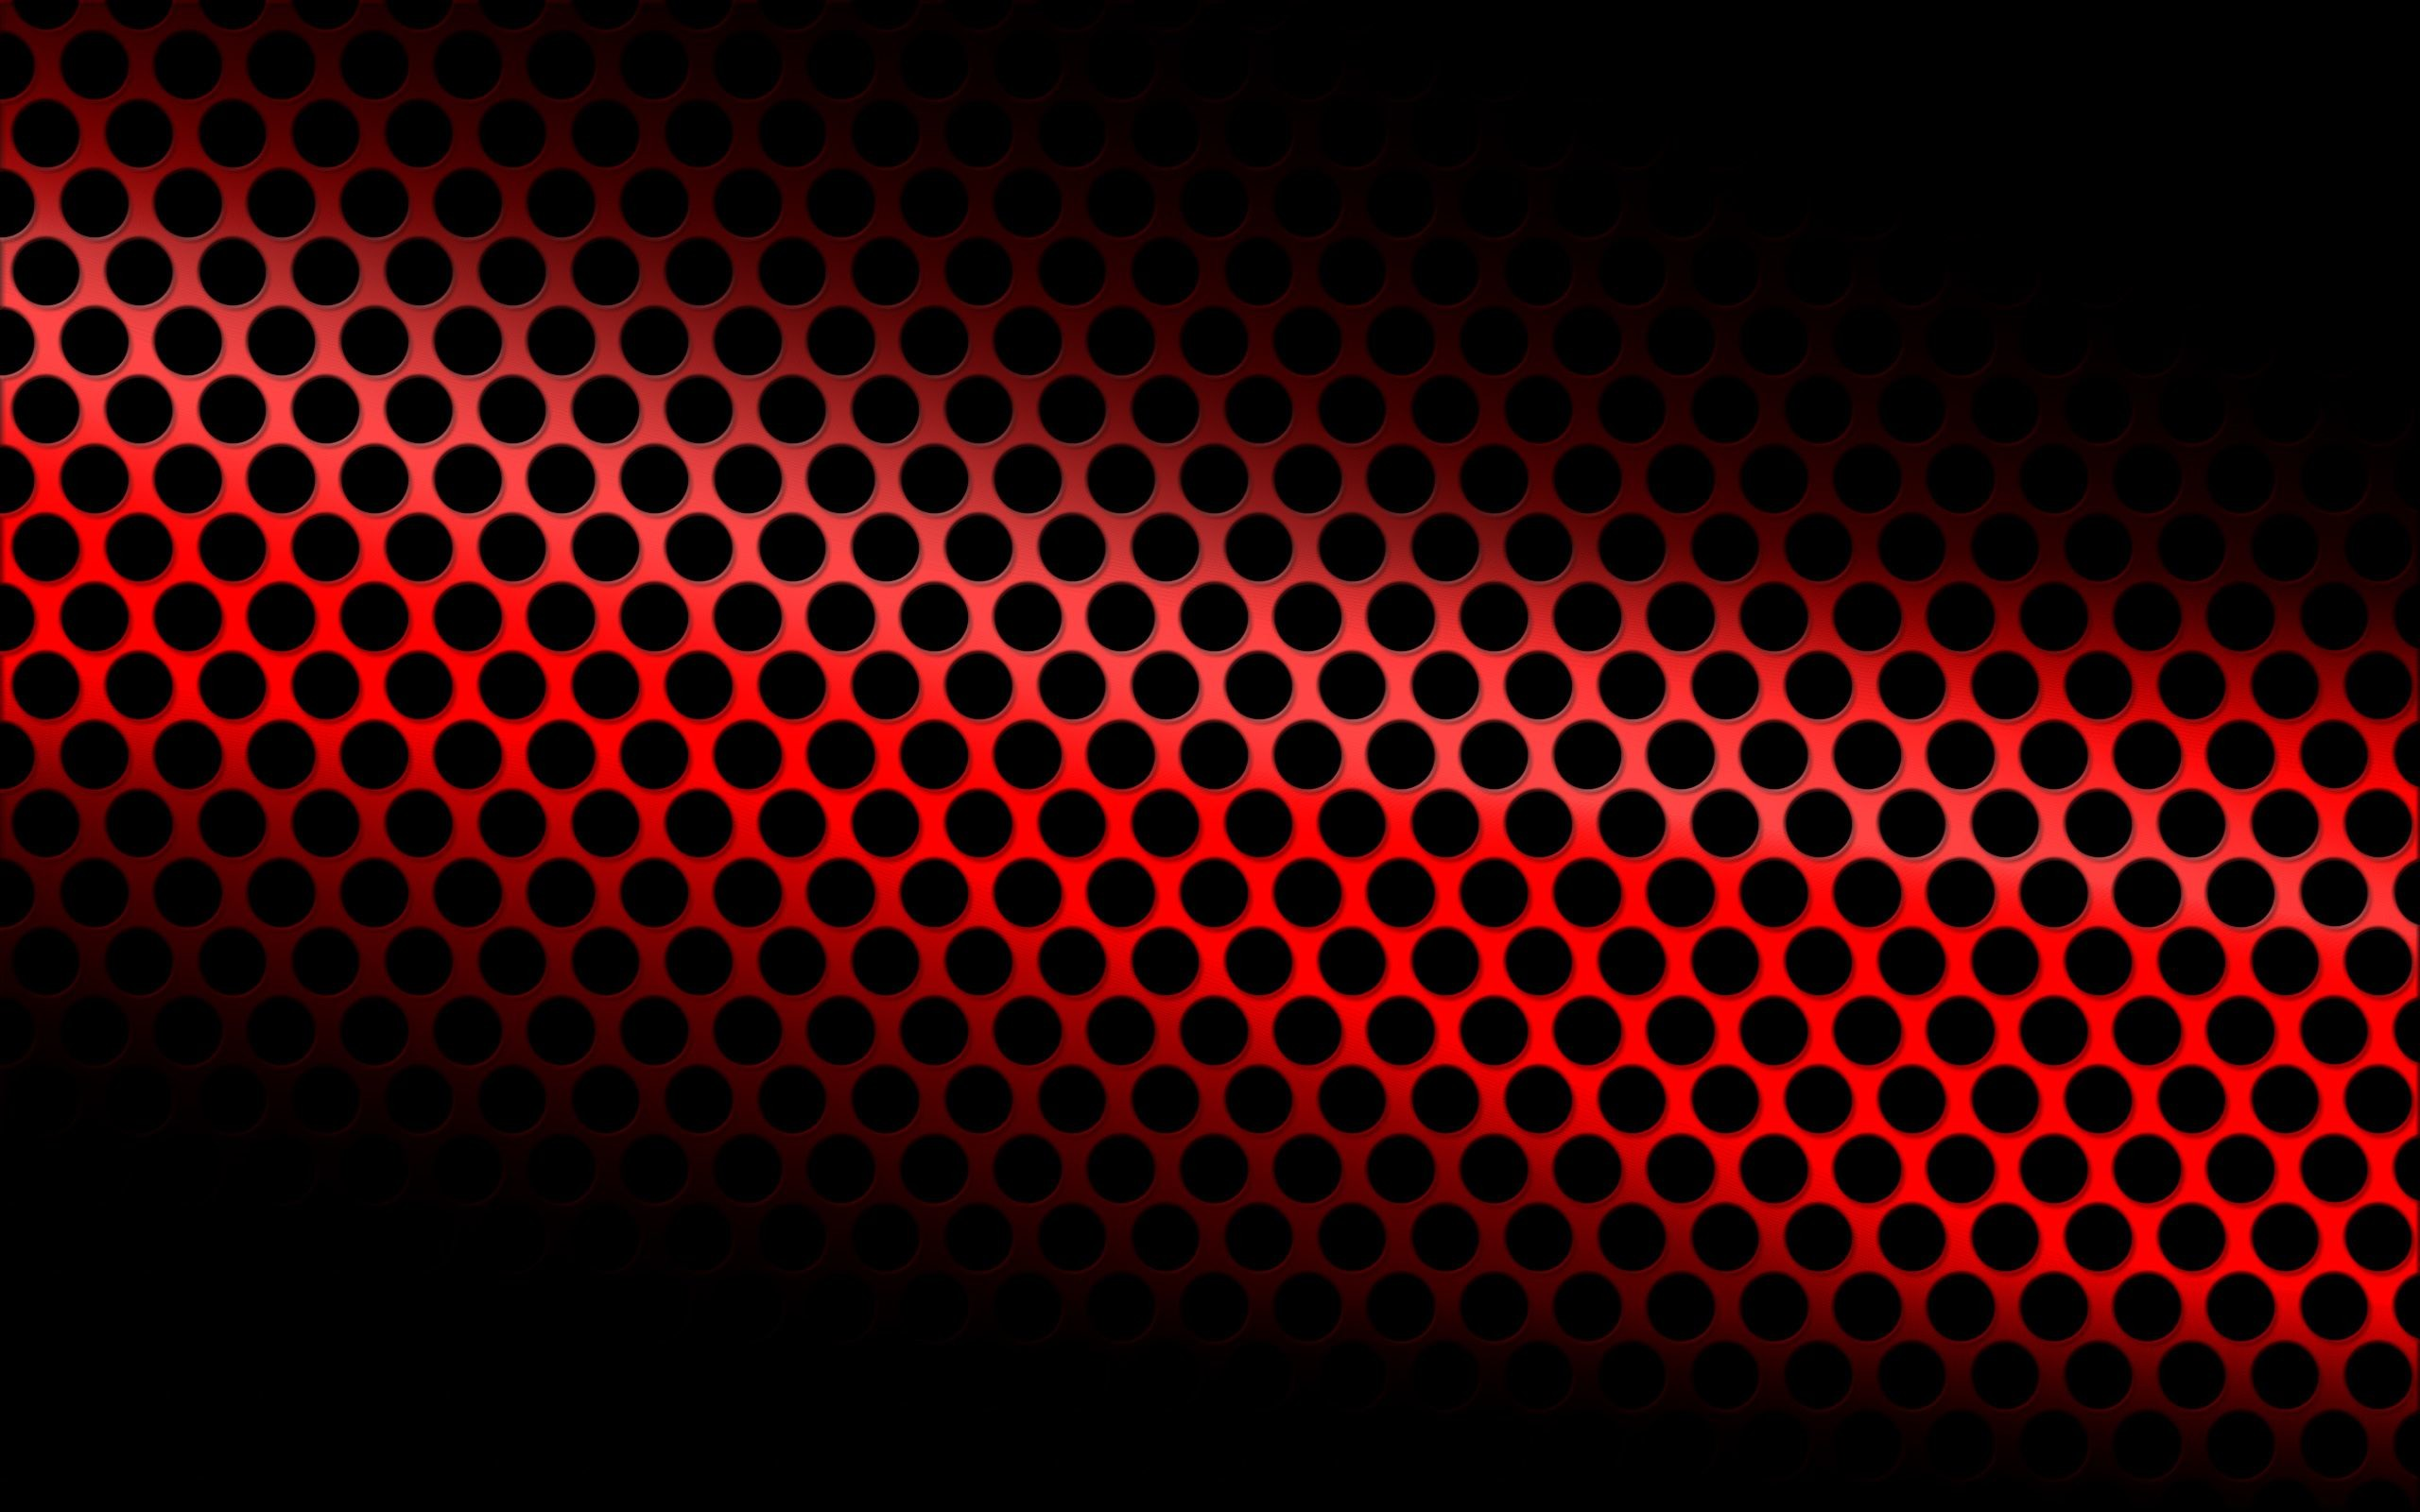 2560x1600 Black And Red Wallpapers HD | HD Wallpapers, Backgrounds, Images .